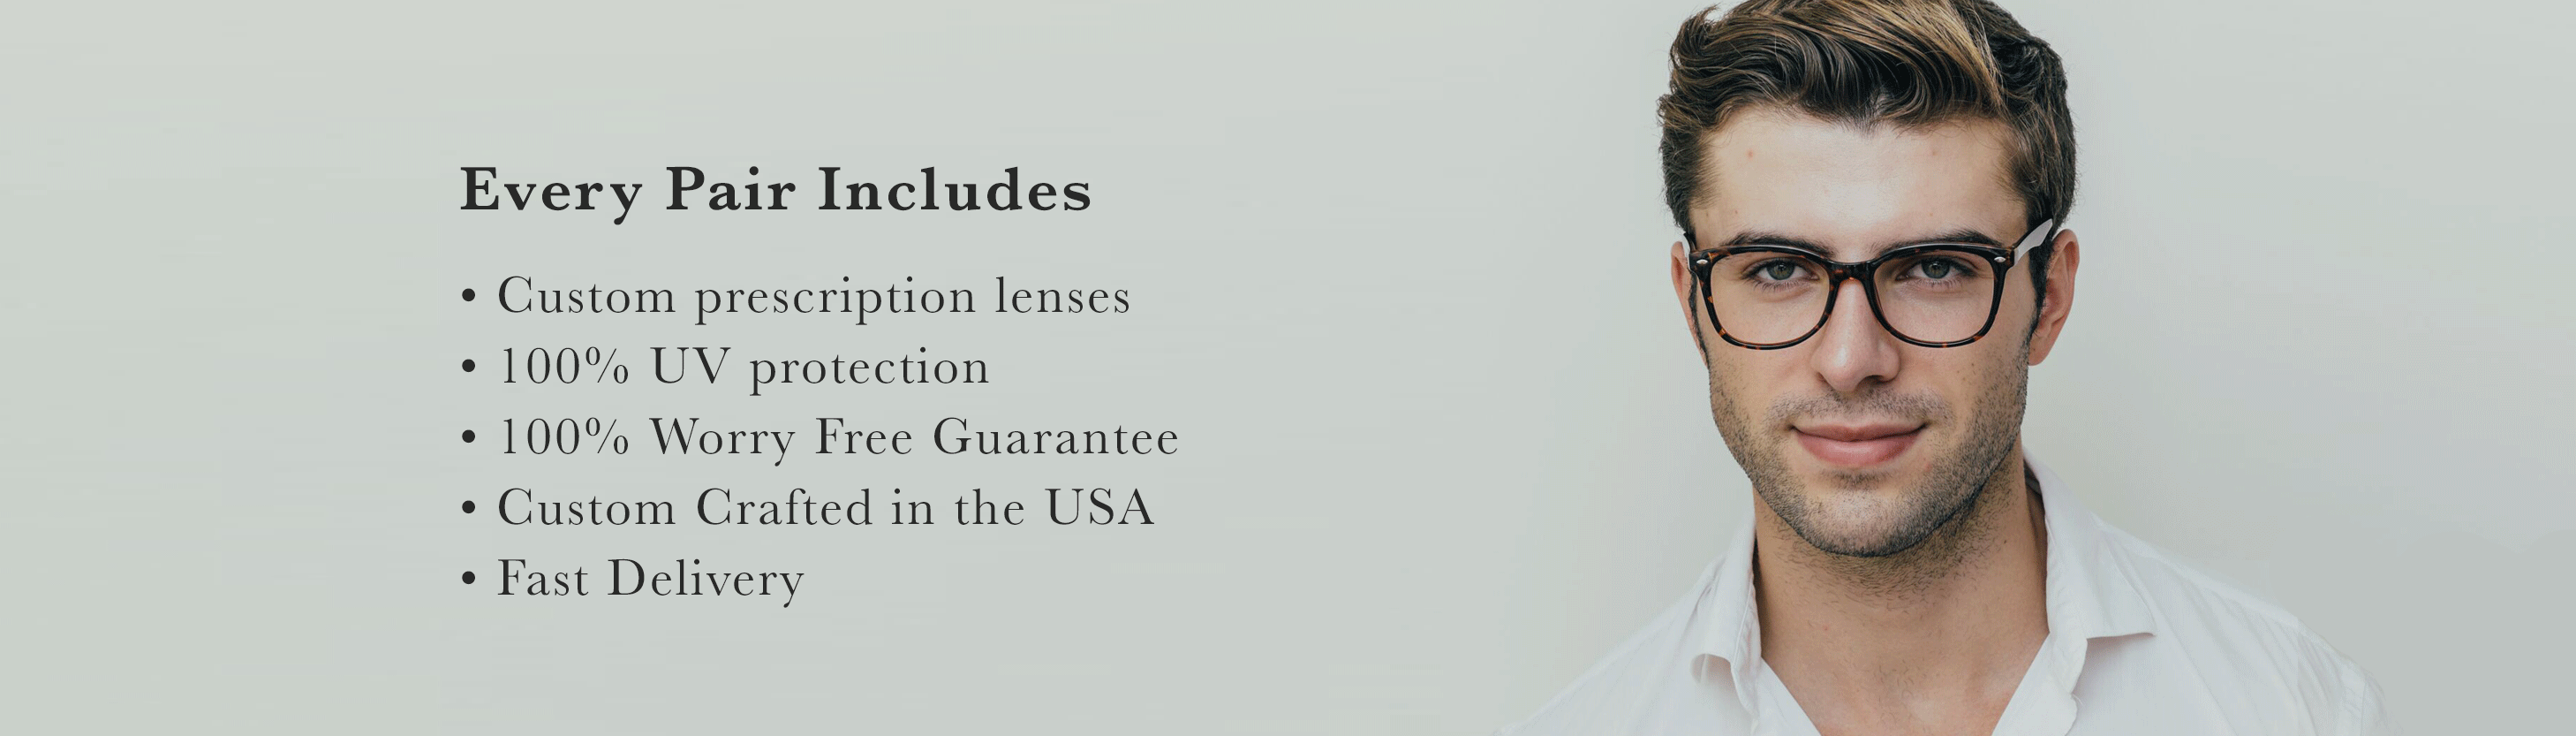 Every Pair Includes: • Custom prescription lenses • 100% UV protection • 100% Worry Free Guarantee • Custom Crafted in the USA • Fast Delivery